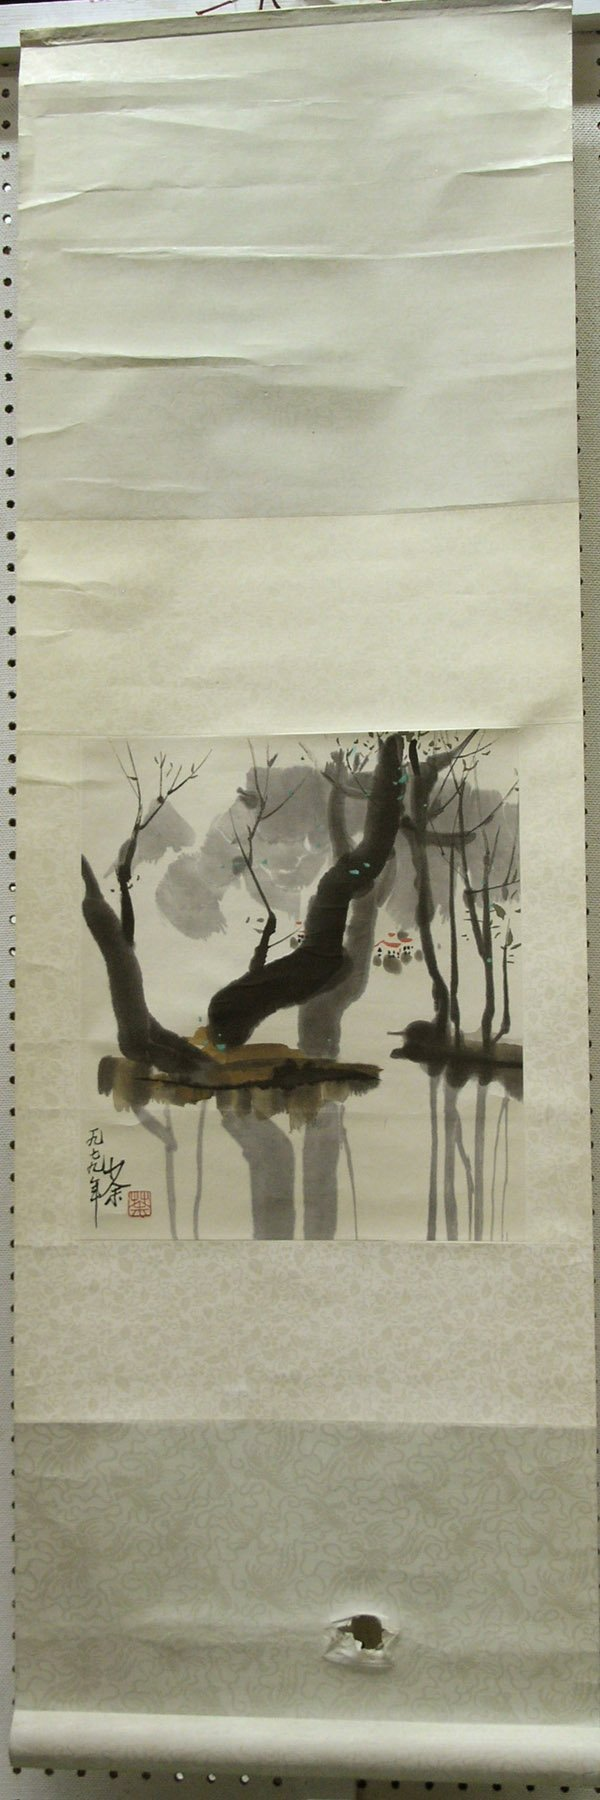 242: Chinese modern scroll painting, 1959